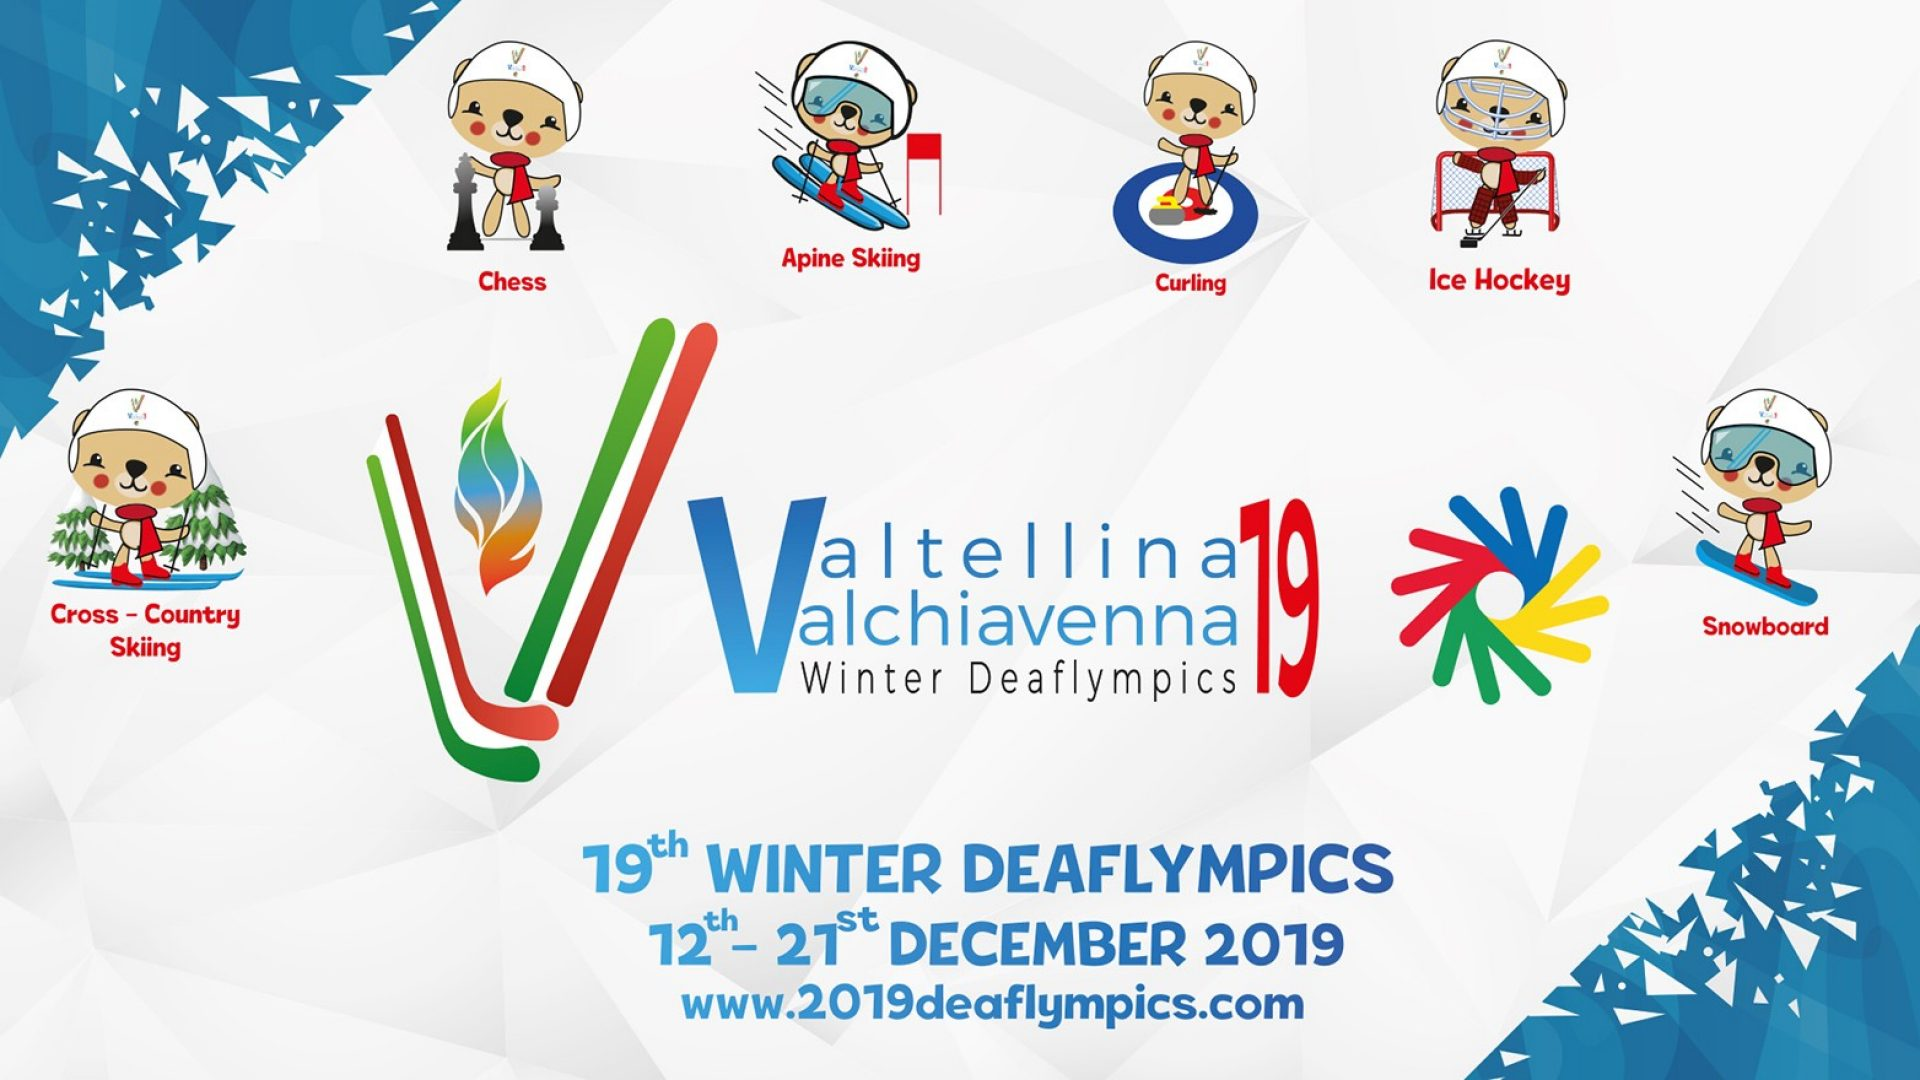 Winter Deaflympics 2019